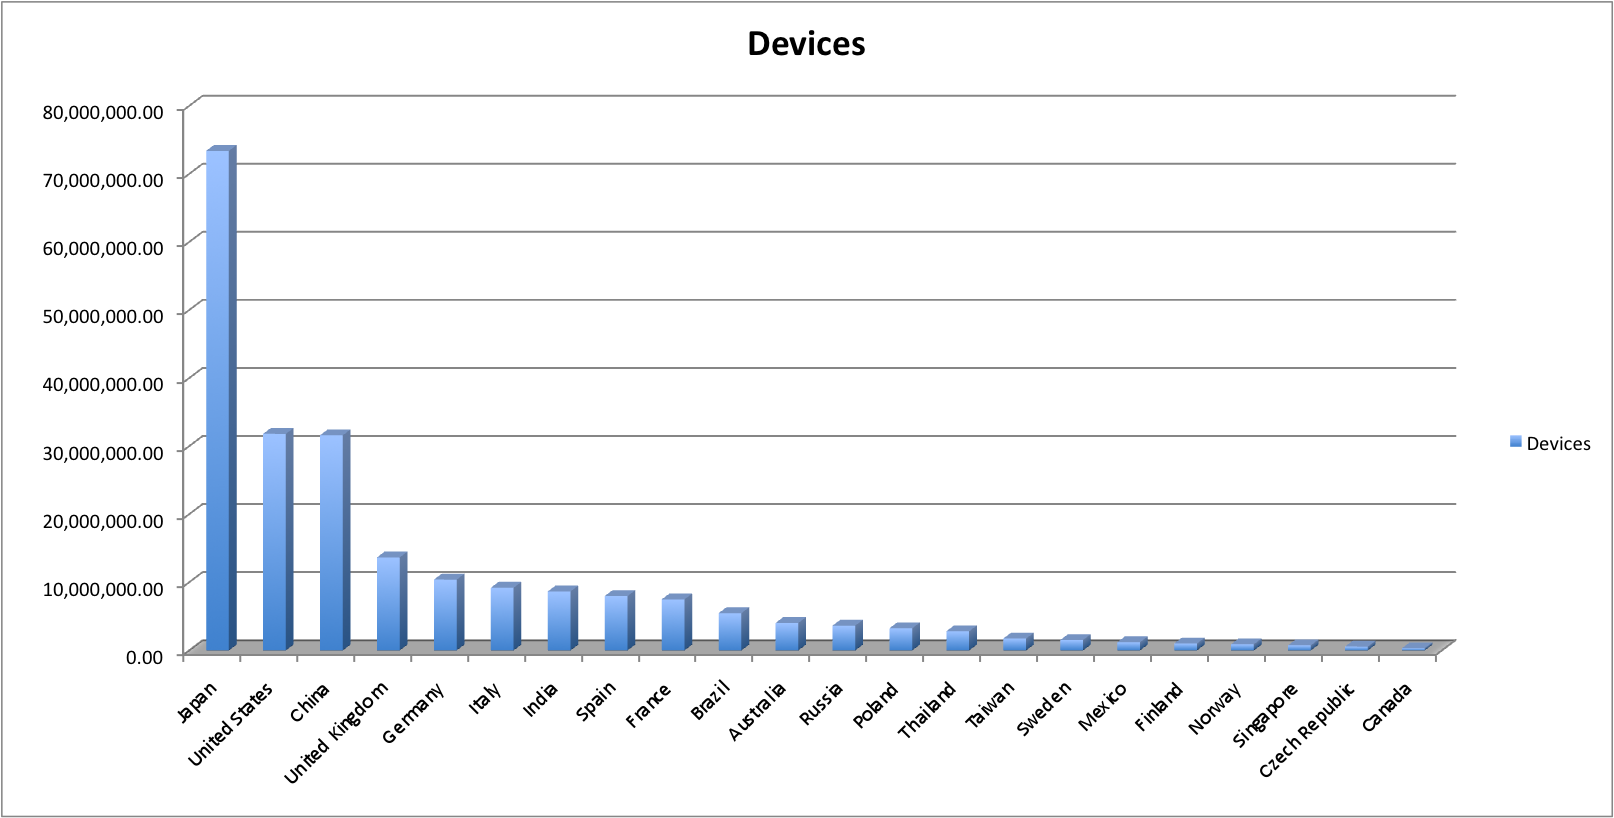 flash devices worldwide